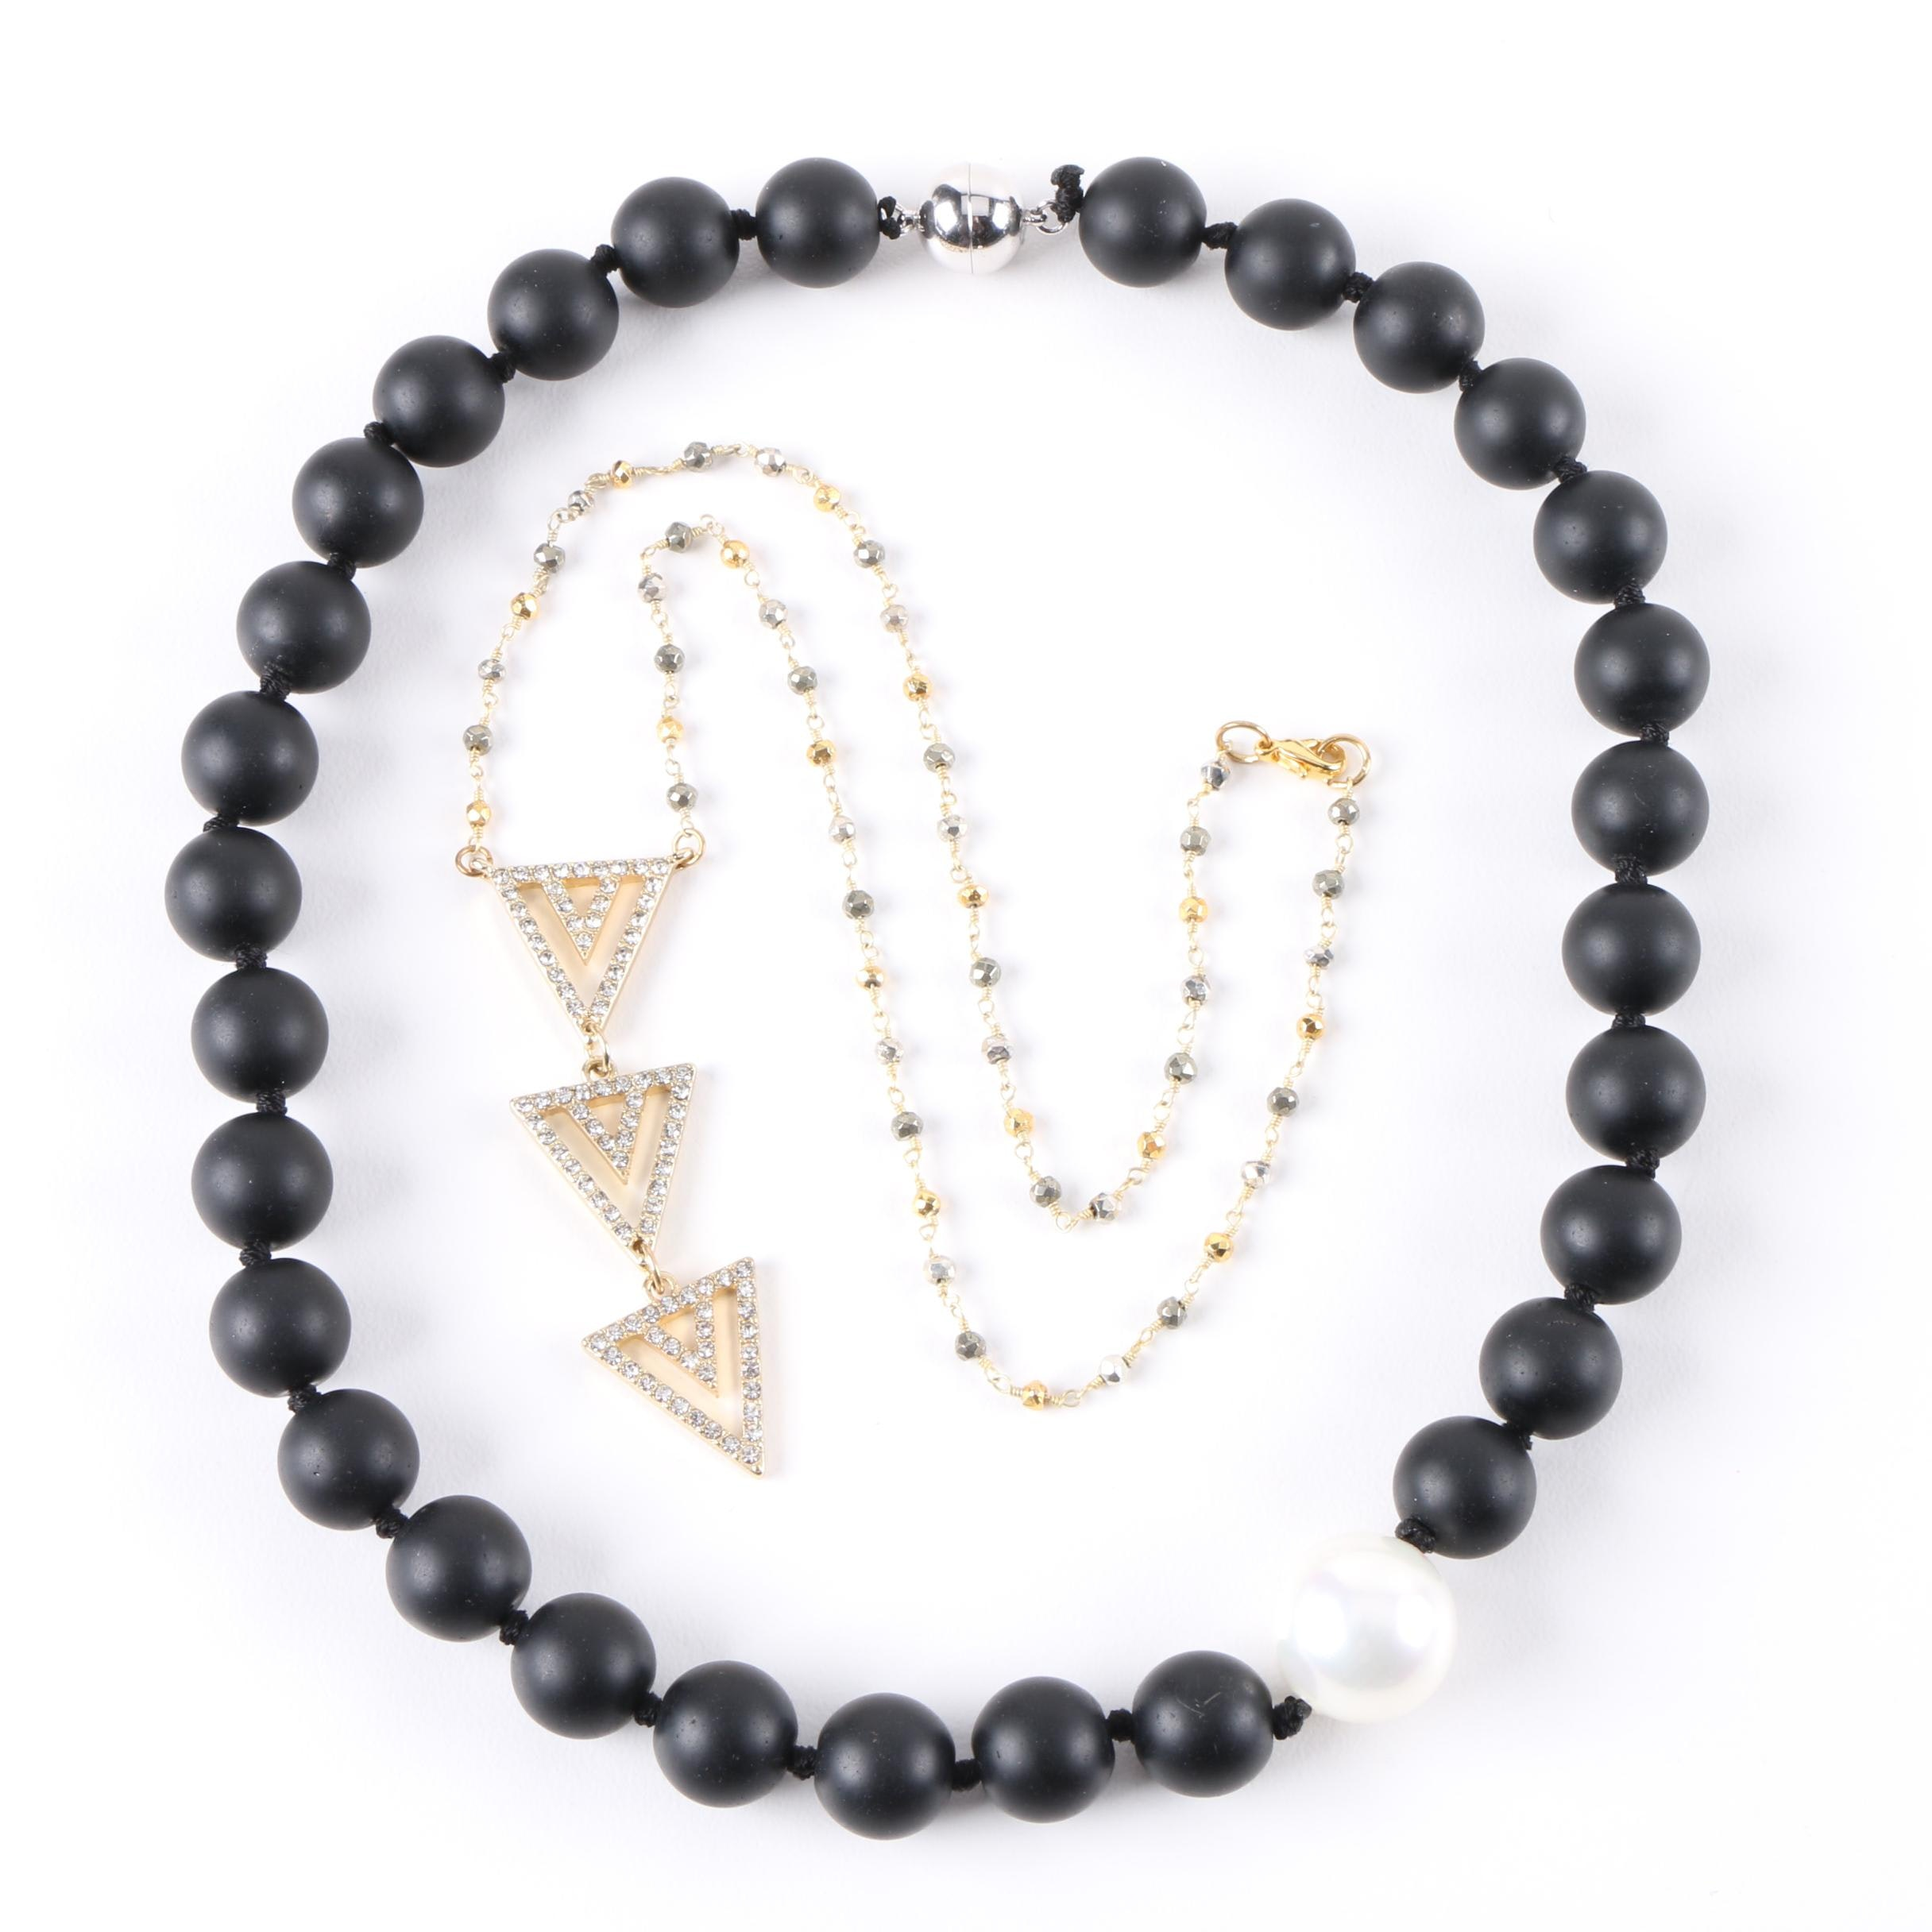 Necklace Assortment Including Imitation Pearl and Black Lava Beads